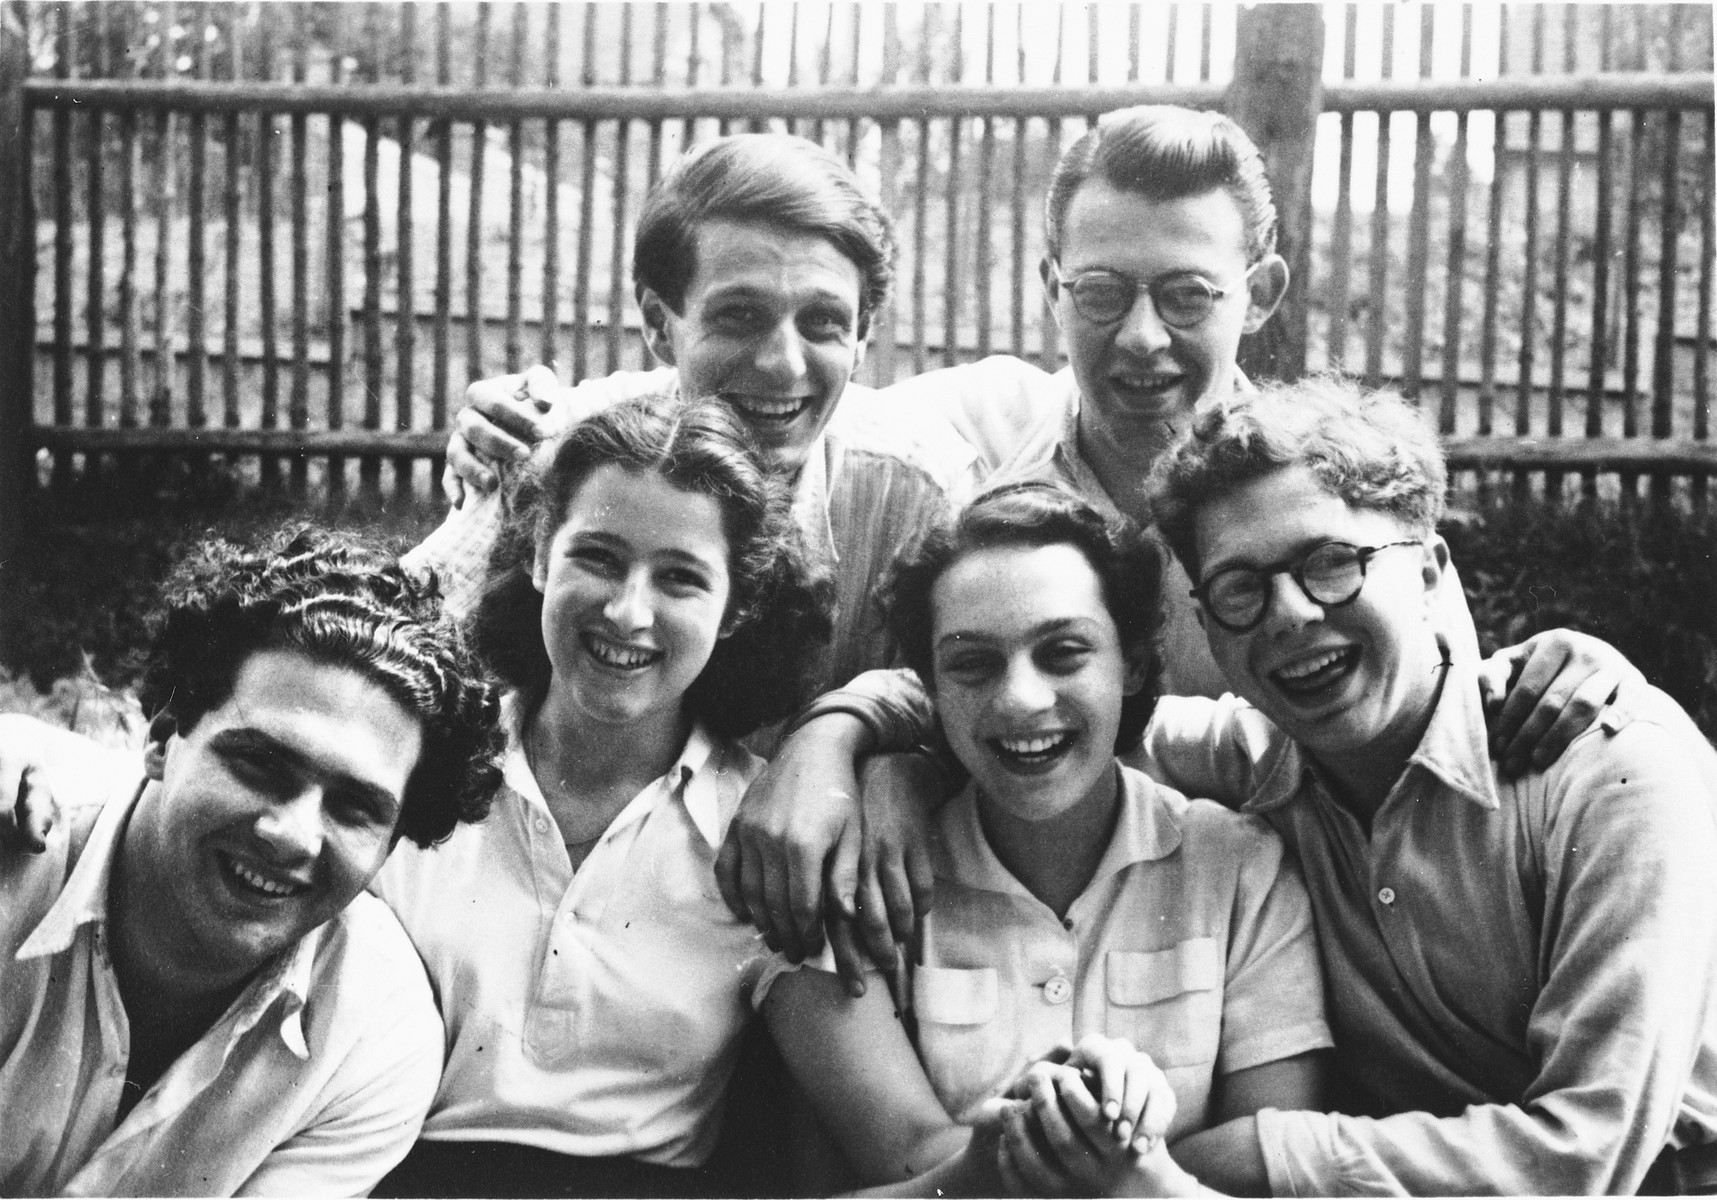 A group of young Jewish friends pose outside in Prague during the Nazi occupation.  Pictured are Peter Hirsch, Rudolph Rychnofsky, Gerhard Kobler, Mushka Bulati, Susanna Bandler and Hans Osers.  Peter Hirsch was killed on the way to Terezin.  Mushka Bulati, Susanna Bandler and Hans Osers survived.